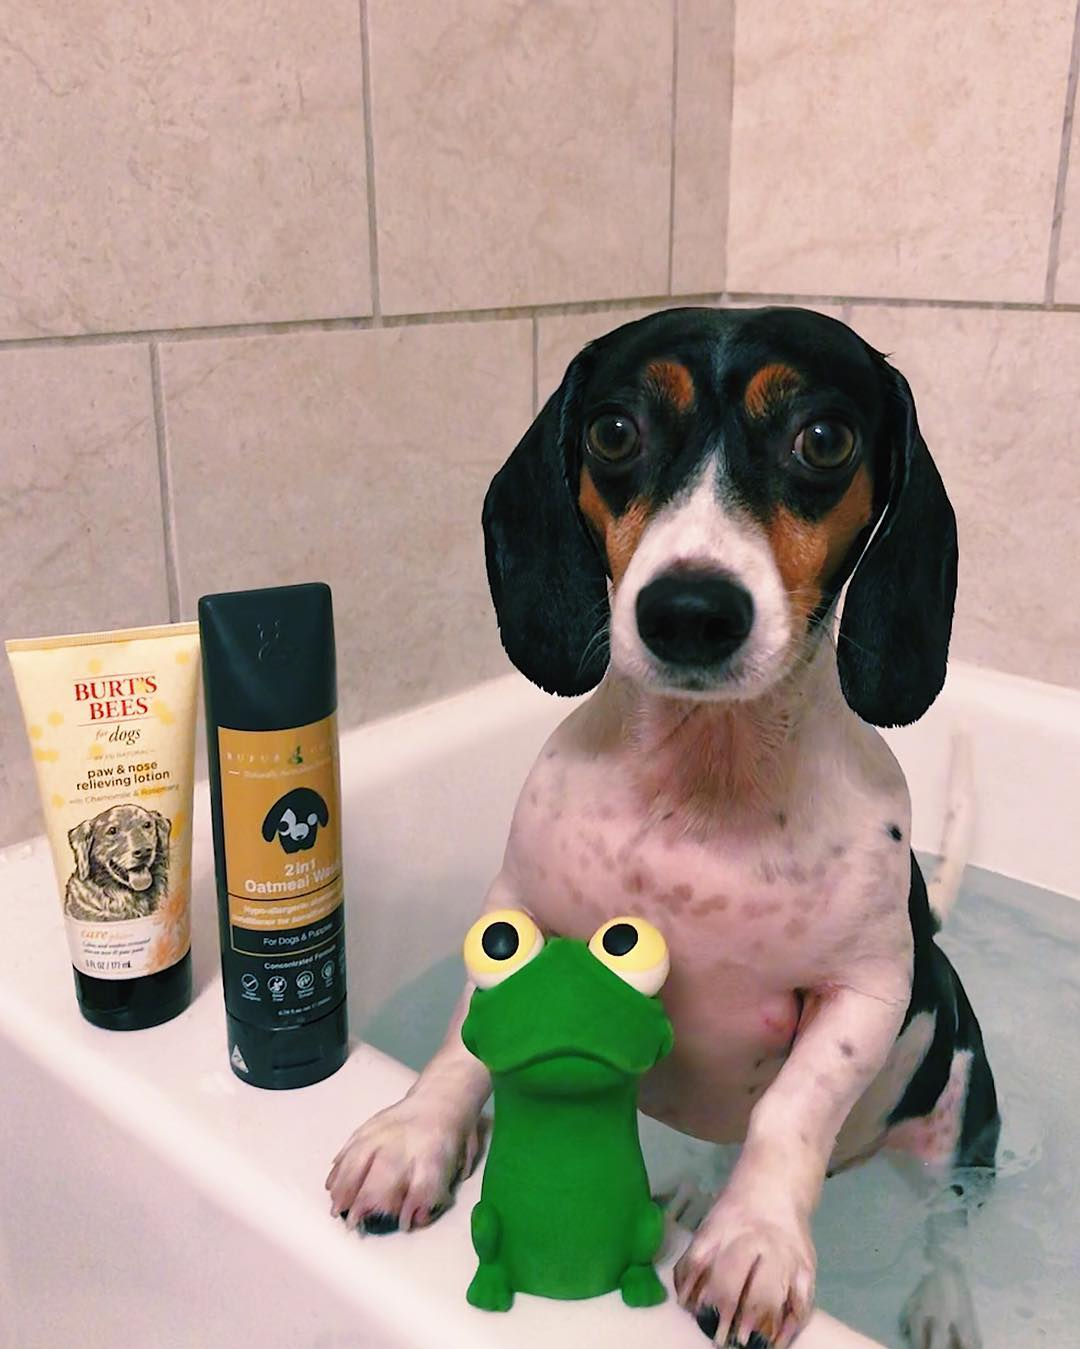 @weenieboycarl with 2in1 Oatmeal Wash by Rufus & Coco